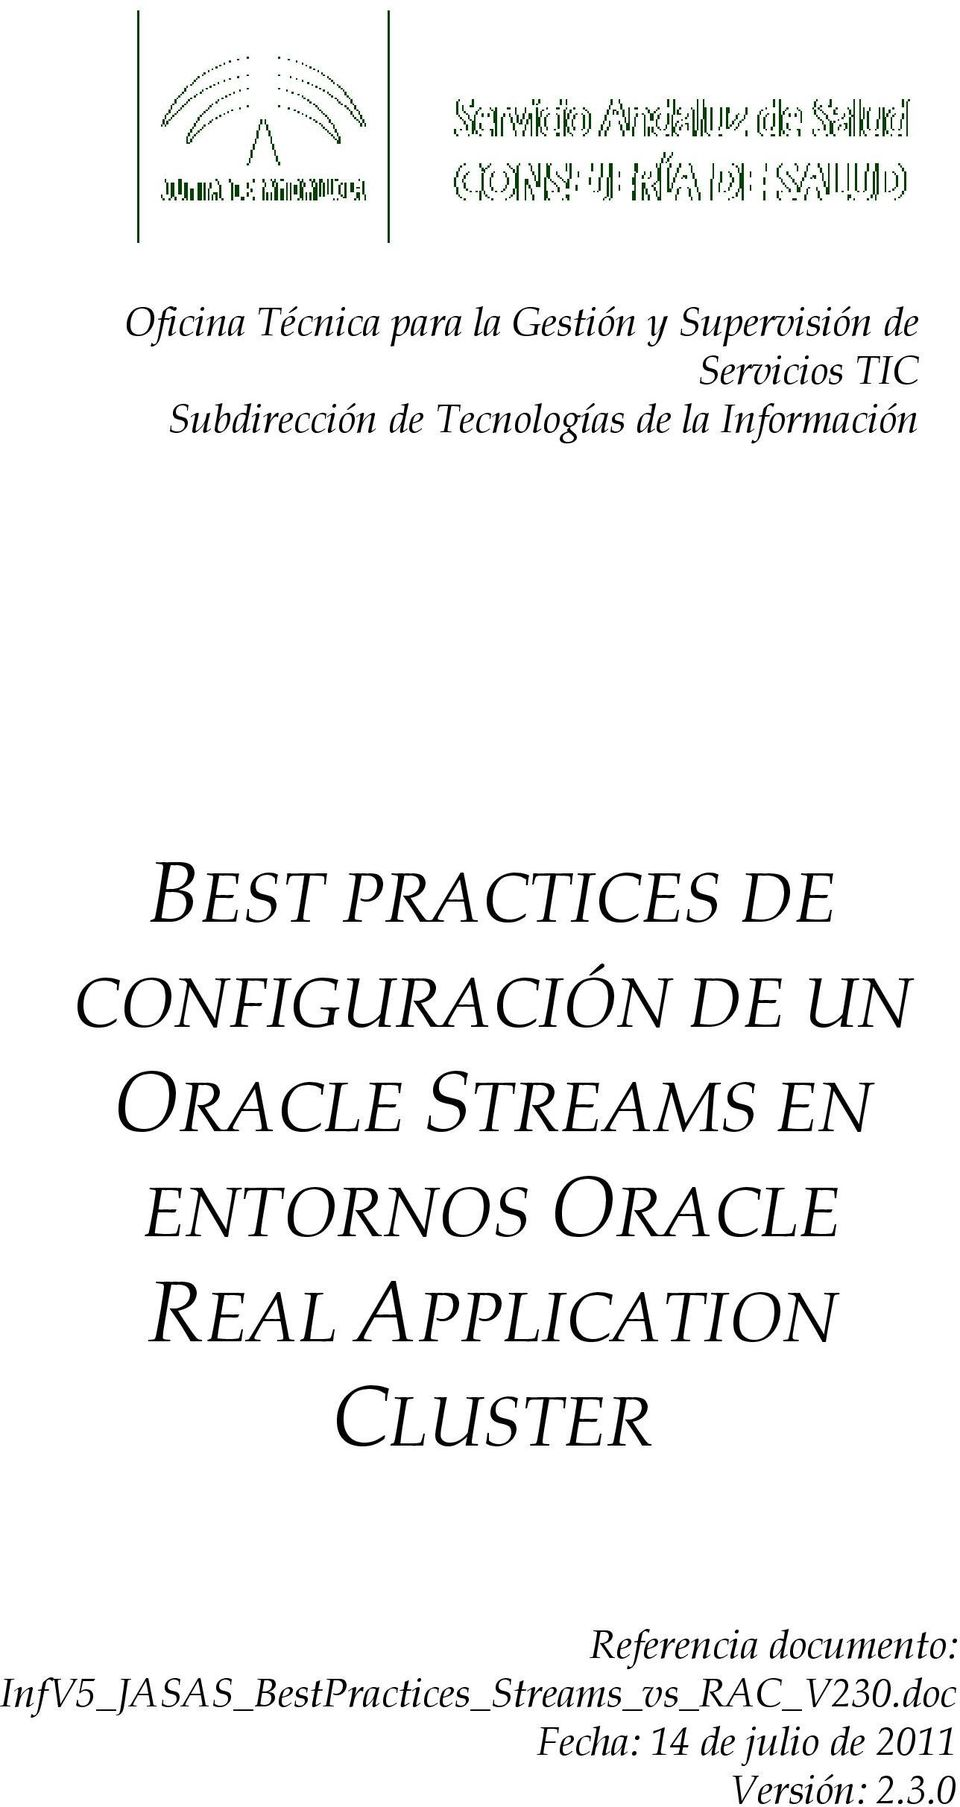 CONFIGURACIÓN DE UN ORACLE STREAMS EN ENTORNOS ORACLE REAL APPLICATION